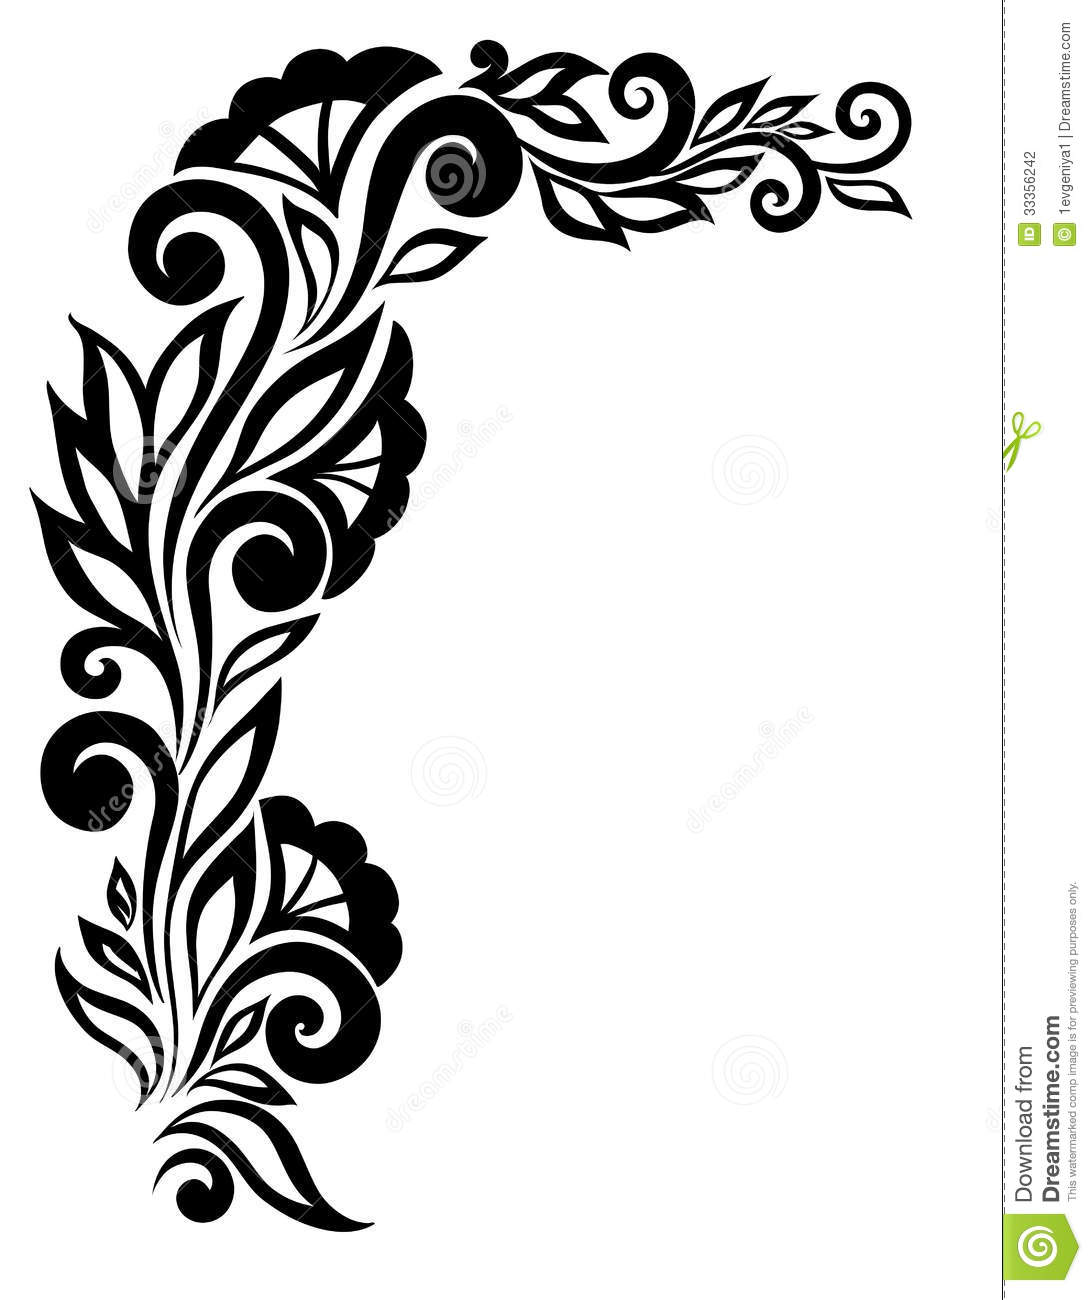 Flower designs black and white - Any design using black and white ...